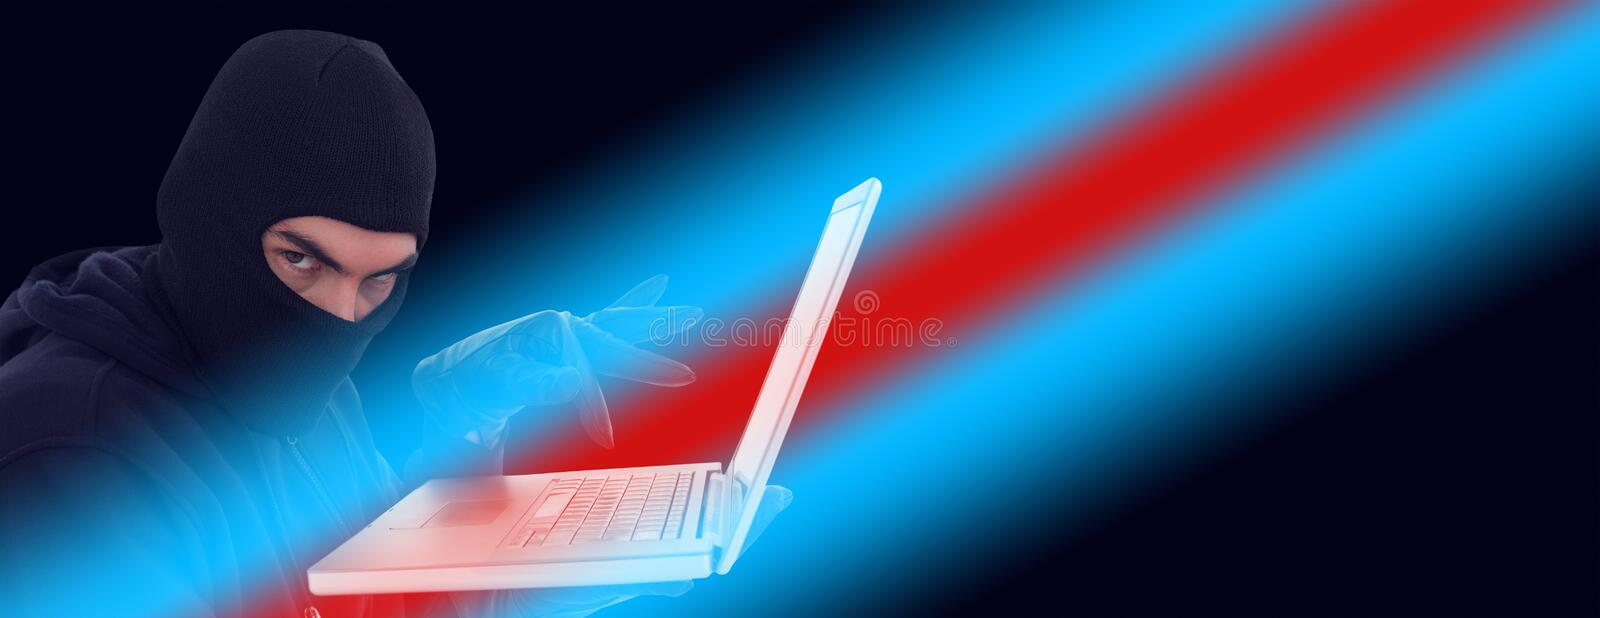 Hacker in balaclava standing and typing on laptop royalty free stock image